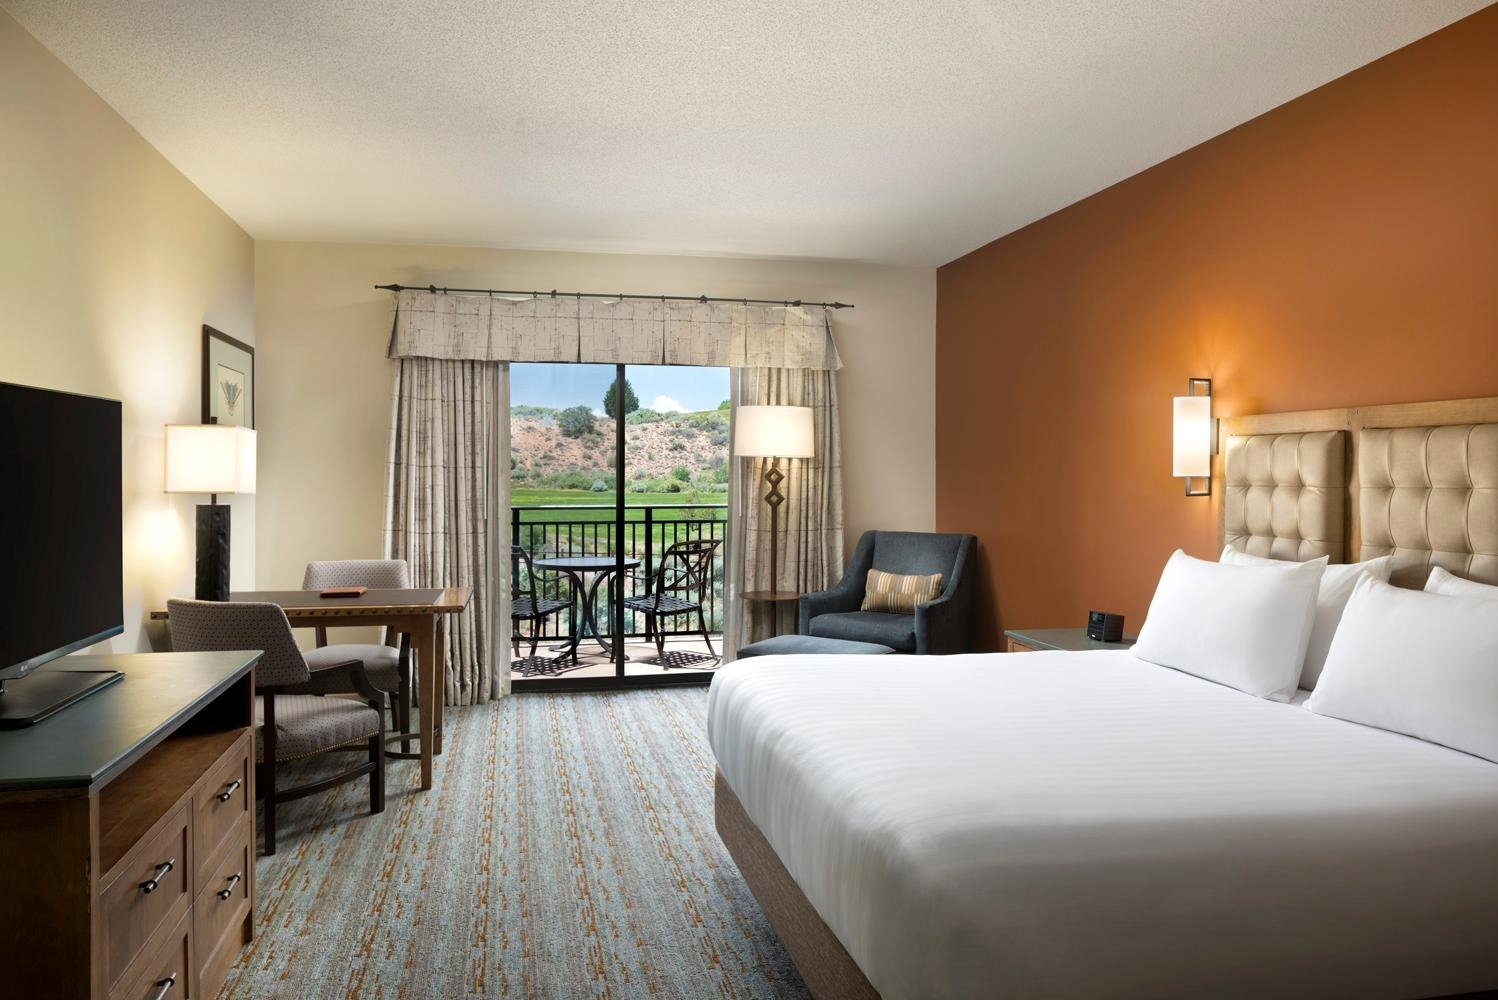 The updates to the resort's public spaces complements the $5 million guestroom renovation completed in 2017.